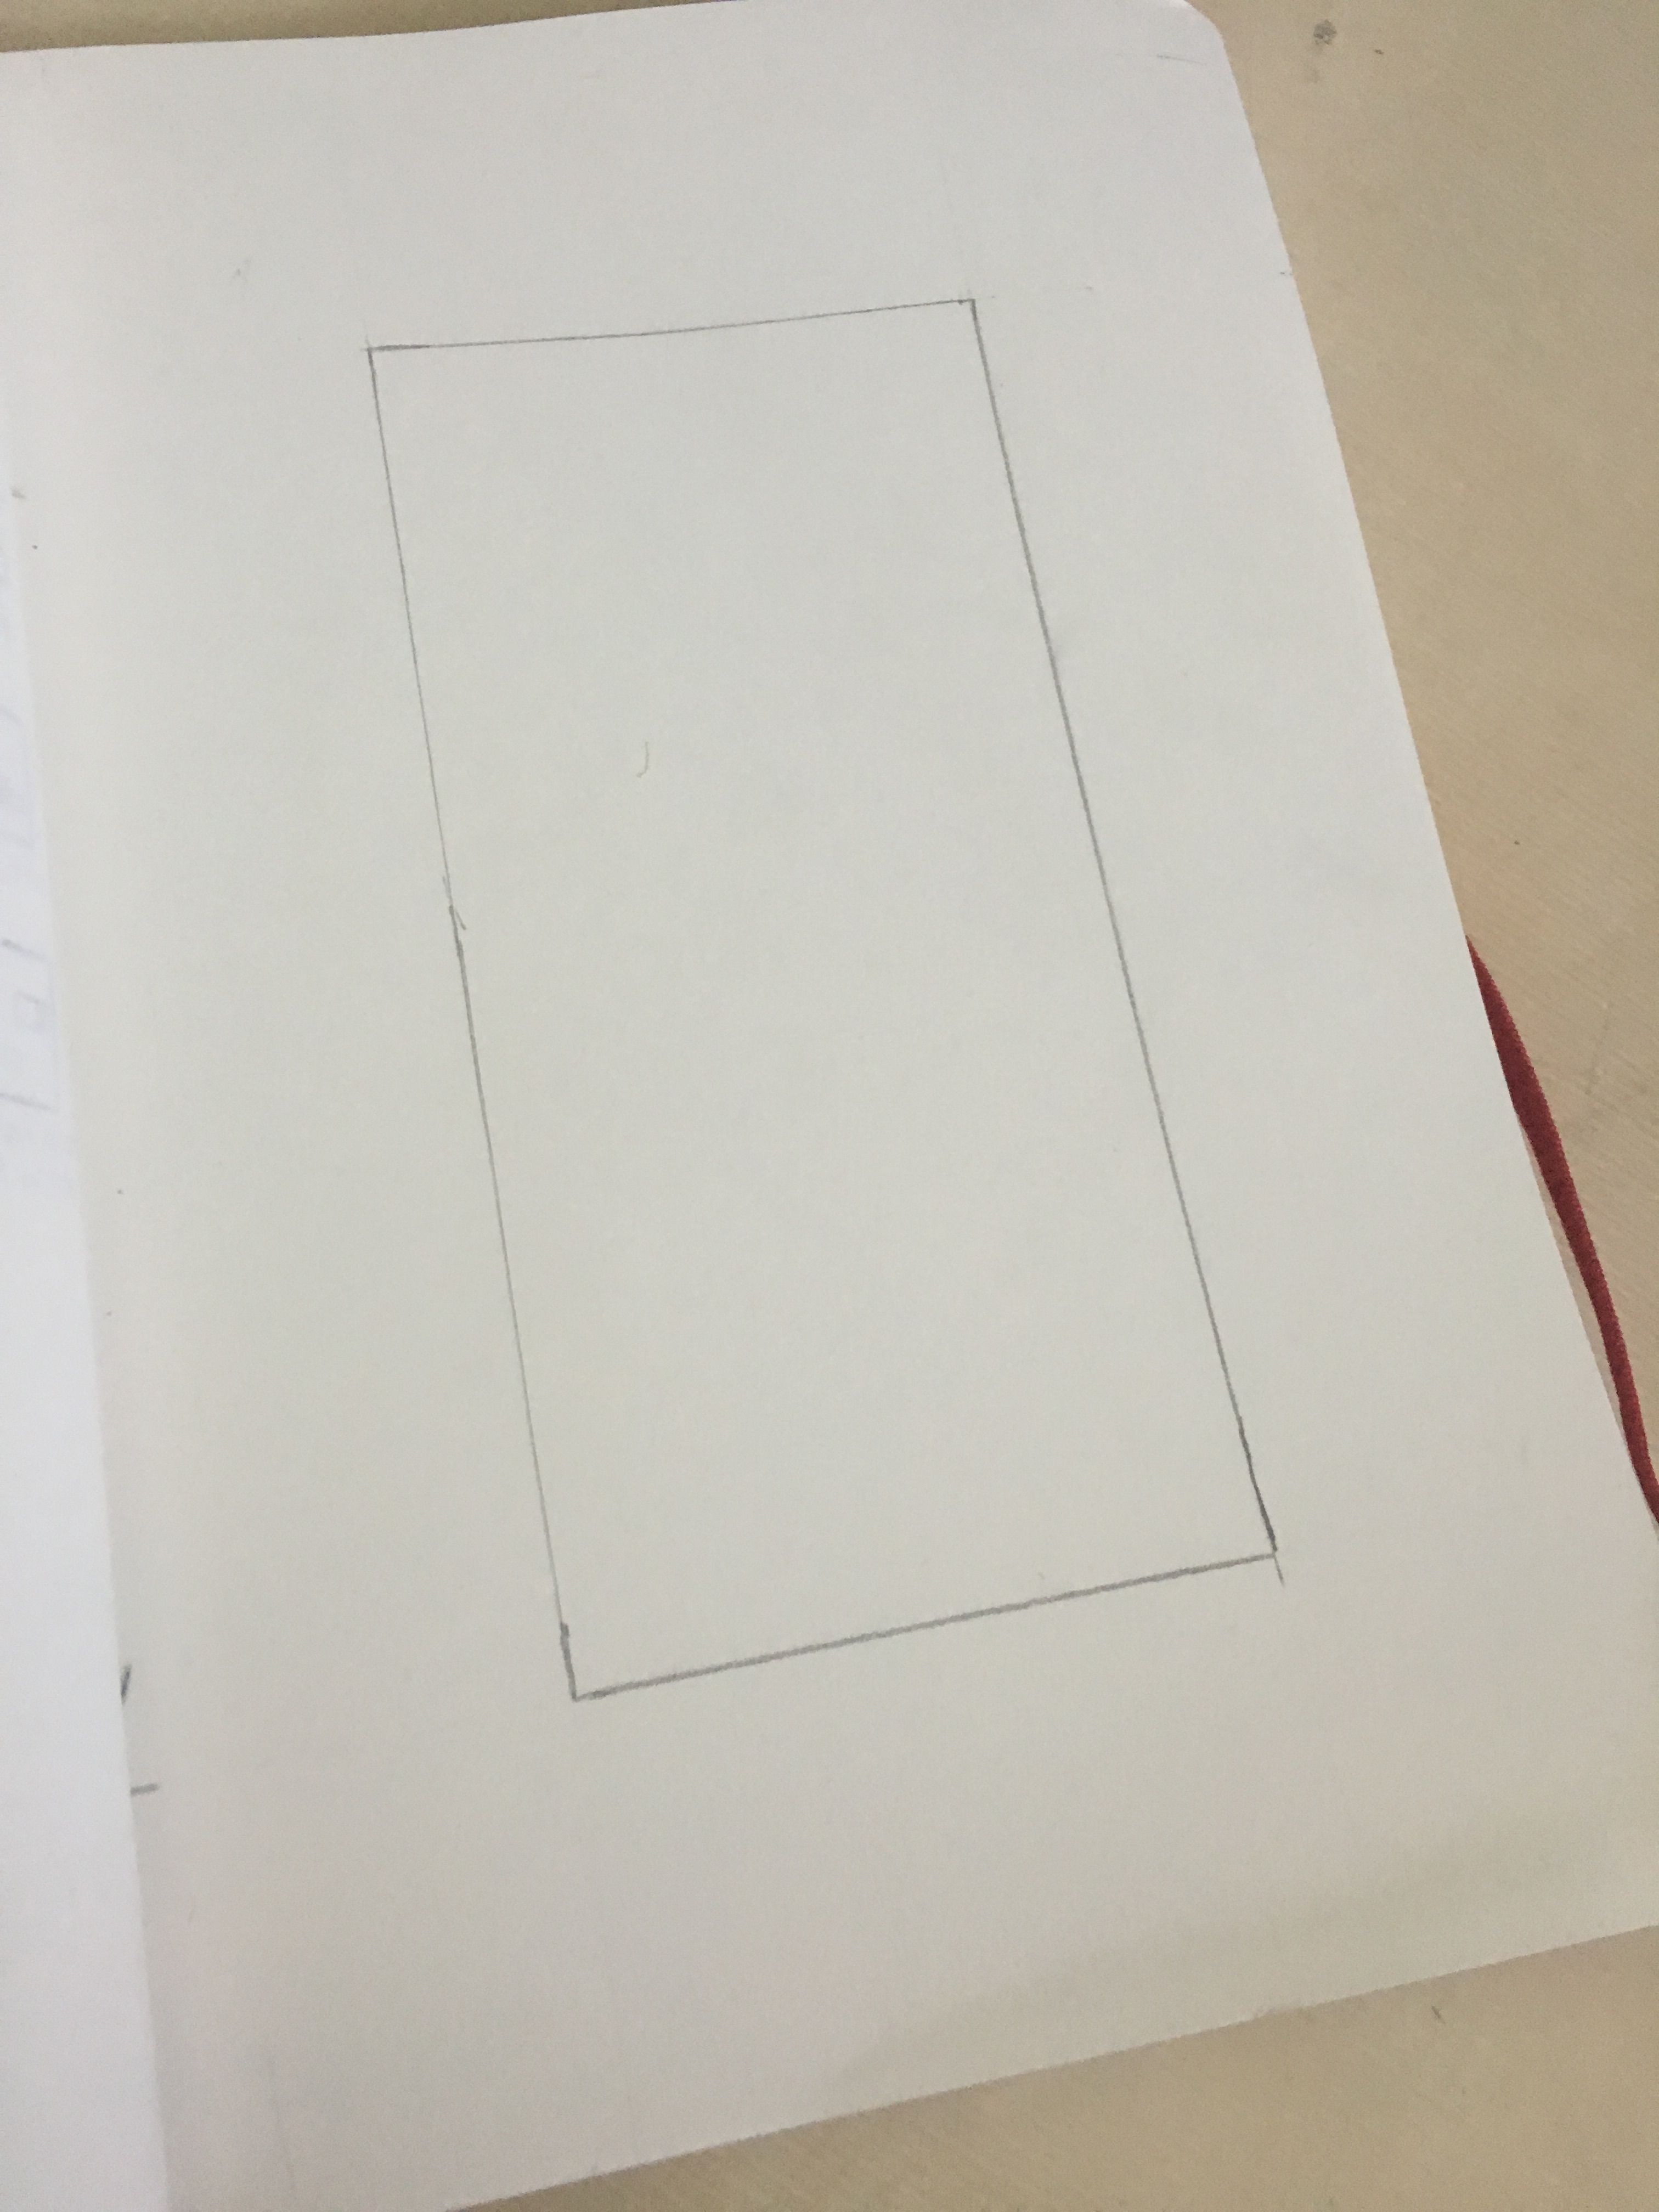 sketching a border before beginning to draw...(1)